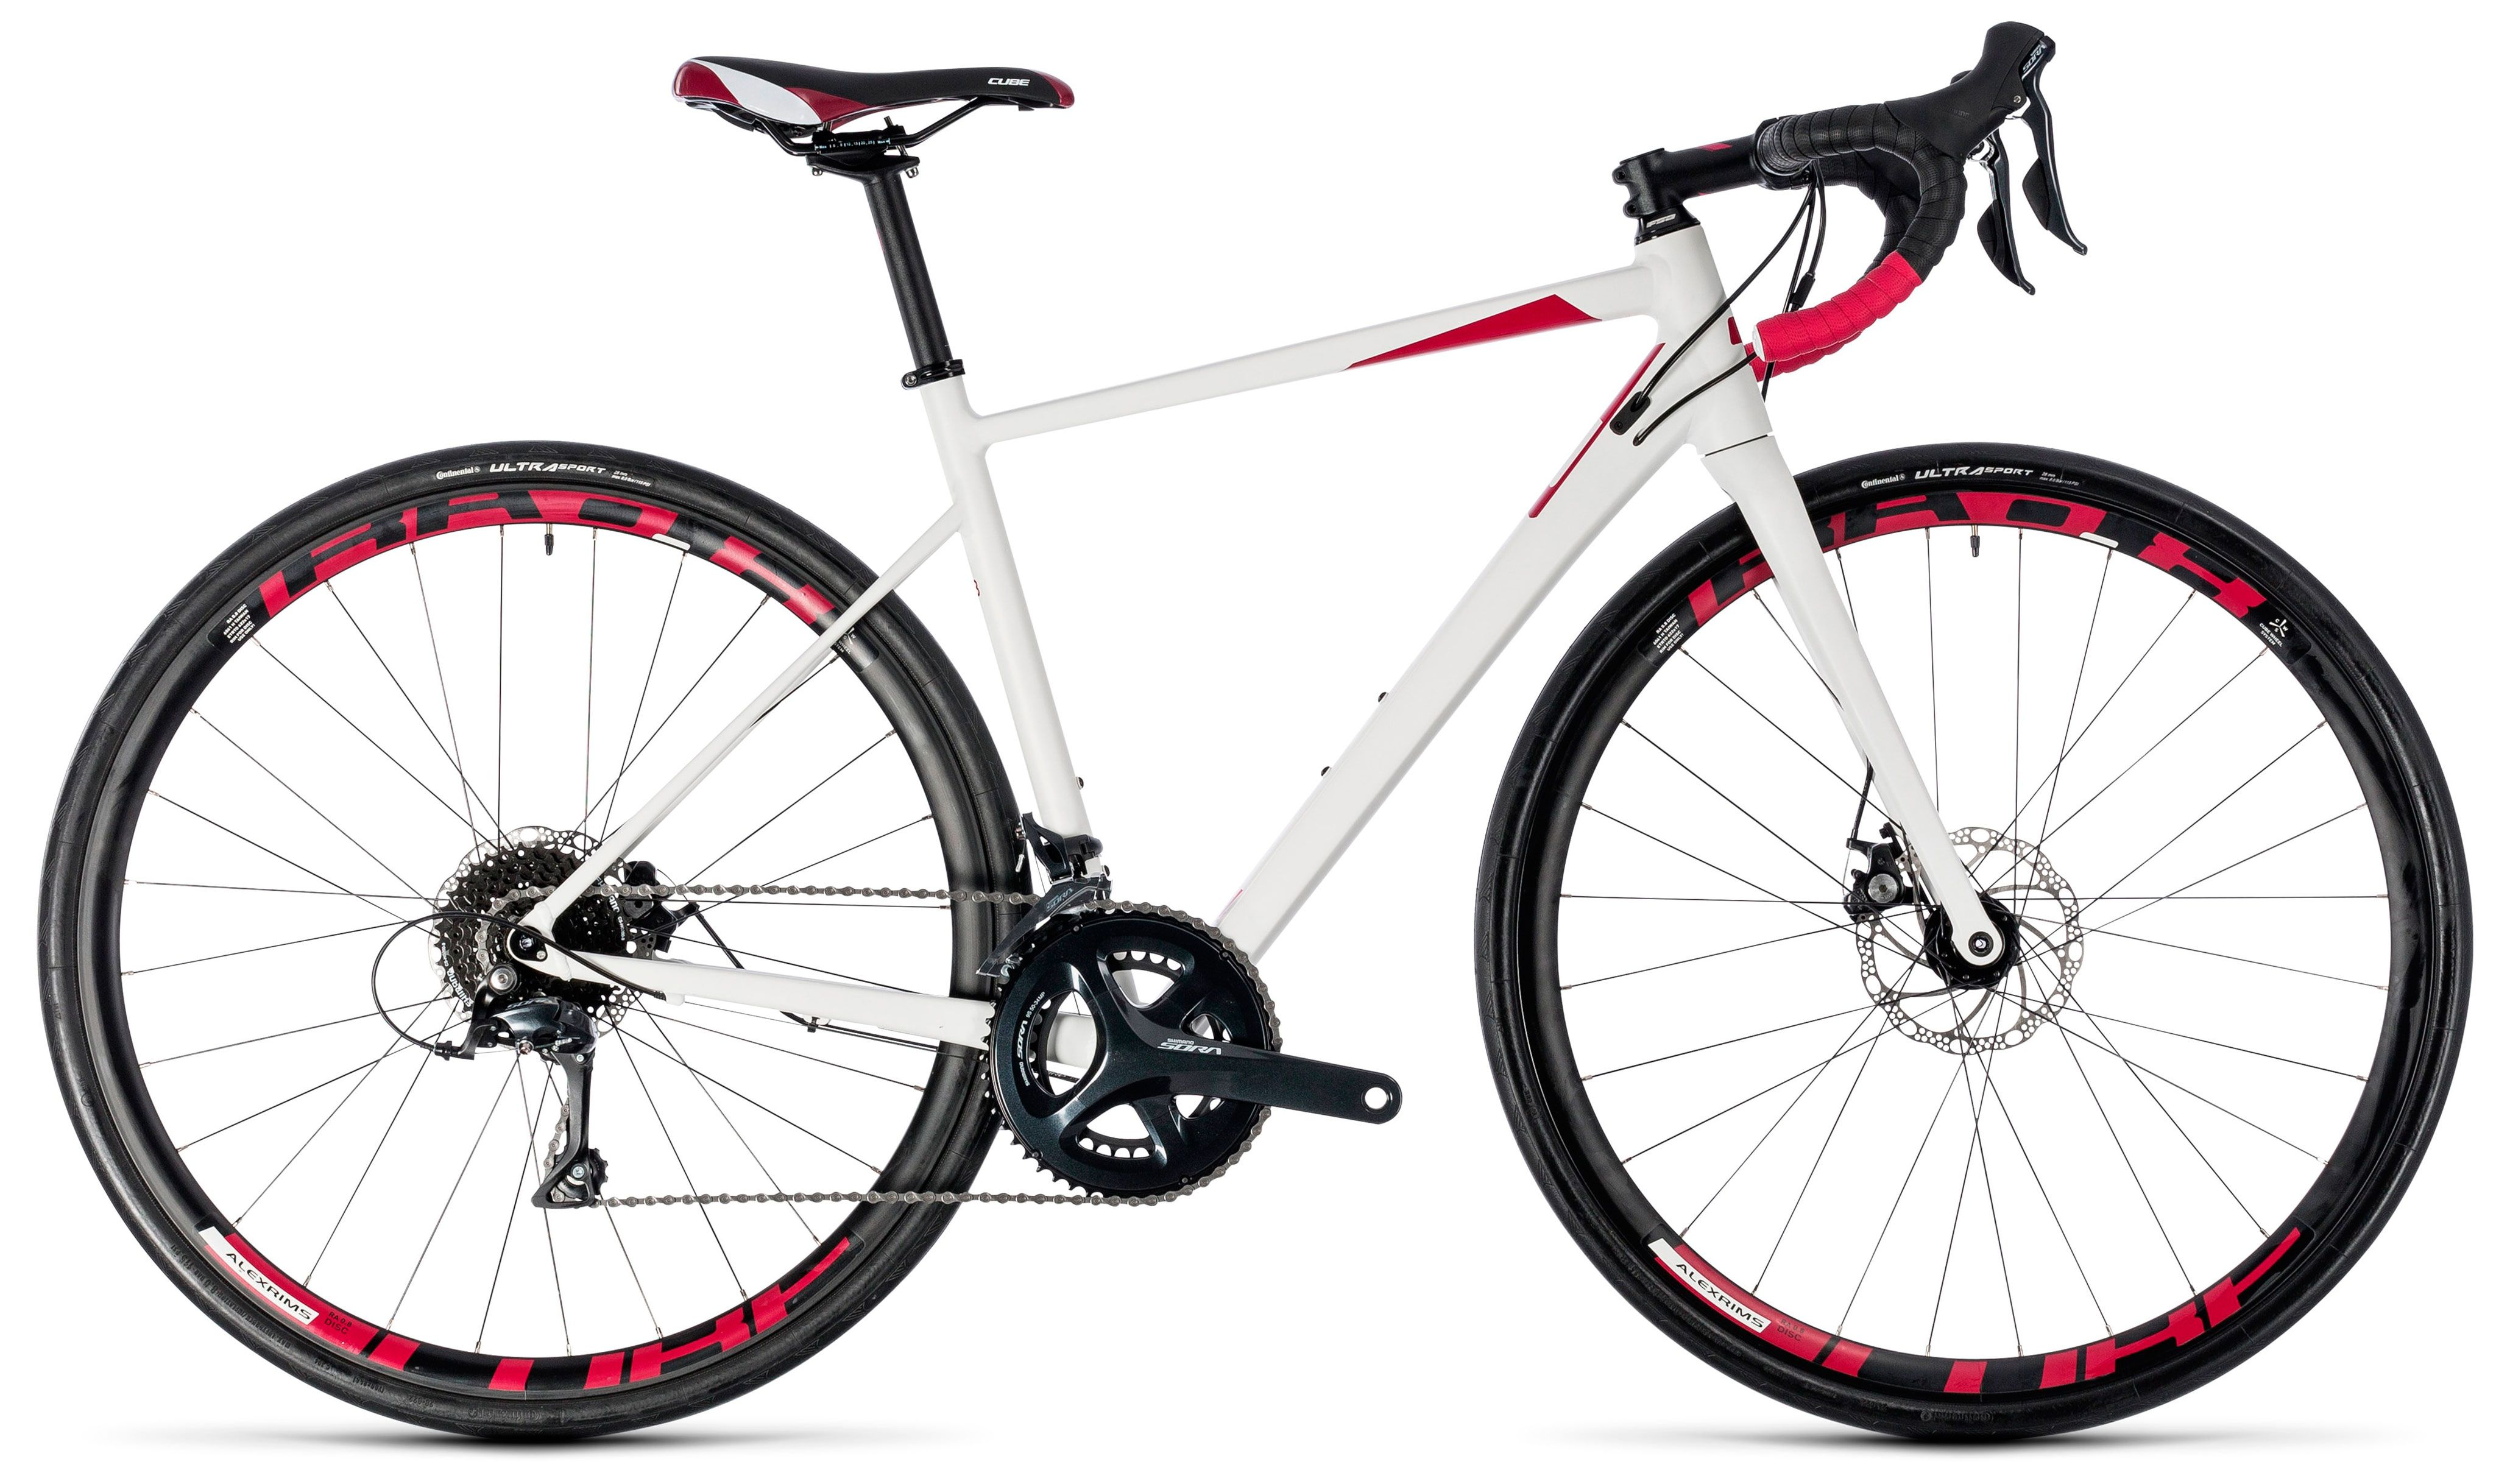 Велосипед Cube Axial WS Pro Disc 2018 велосипед specialized tarmac pro disc race 2015